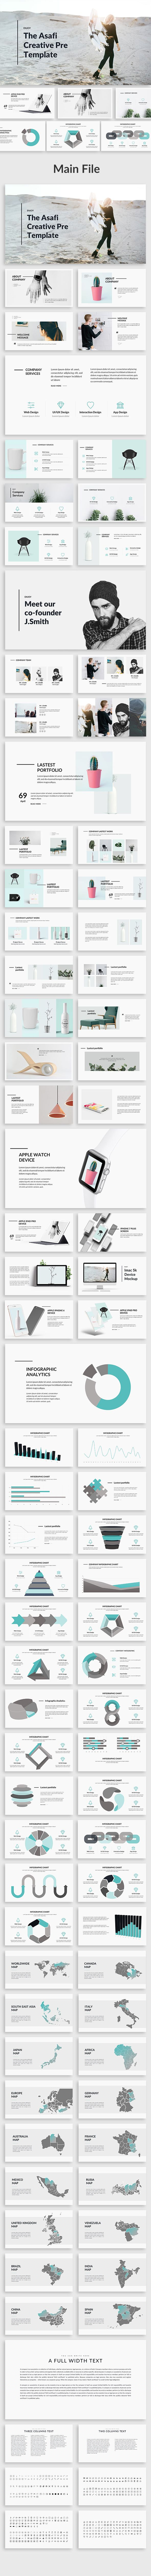 Asafi - Creative Powerpoint Template